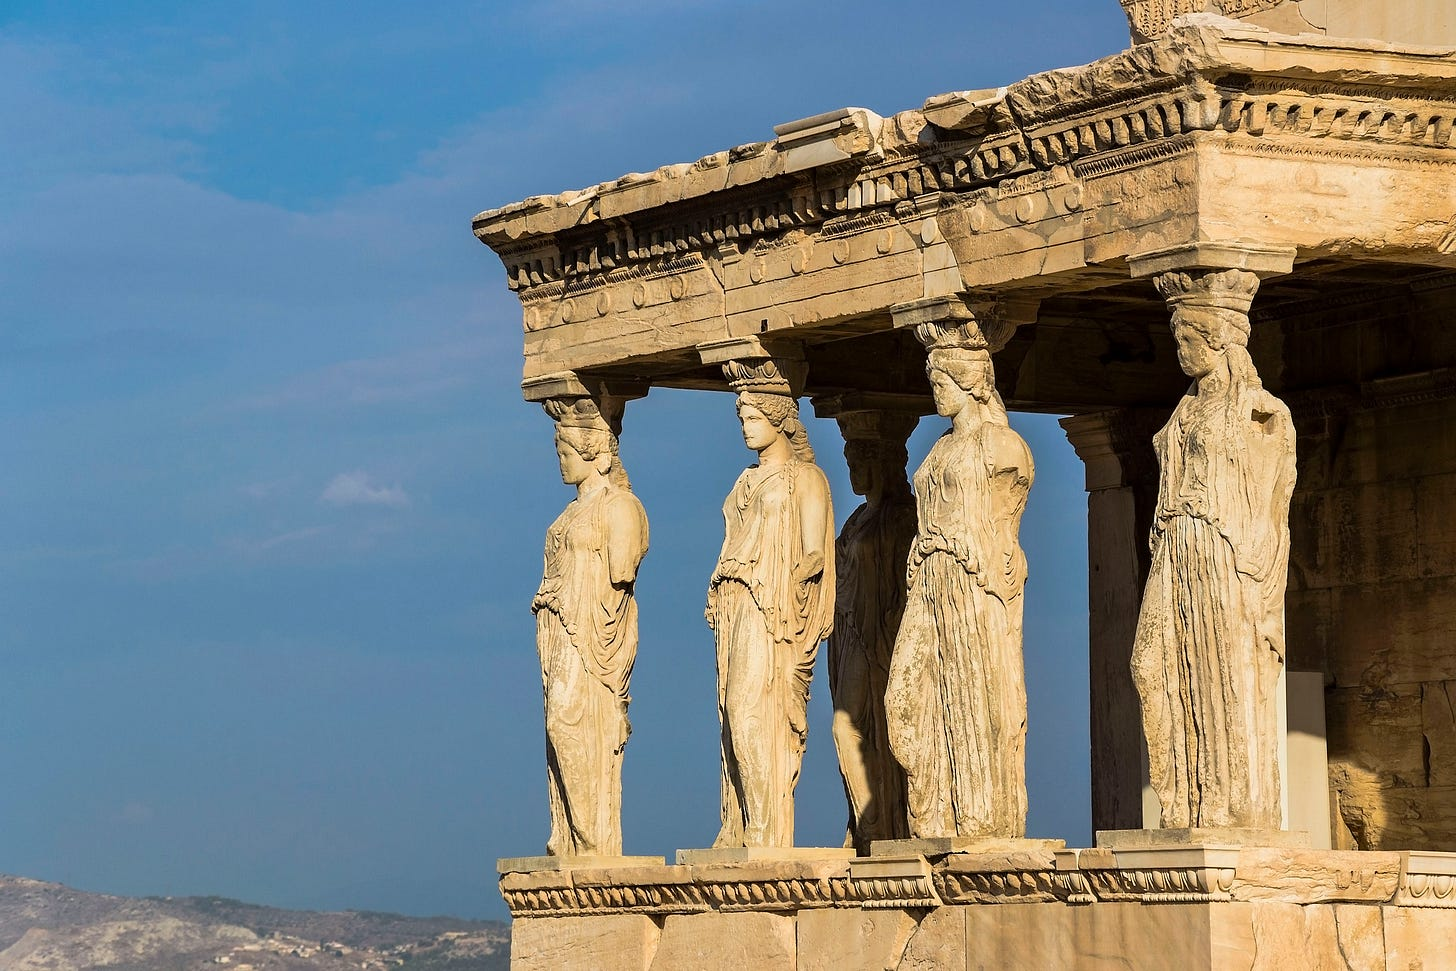 Caryatid statues on the Acropolis in Athens.